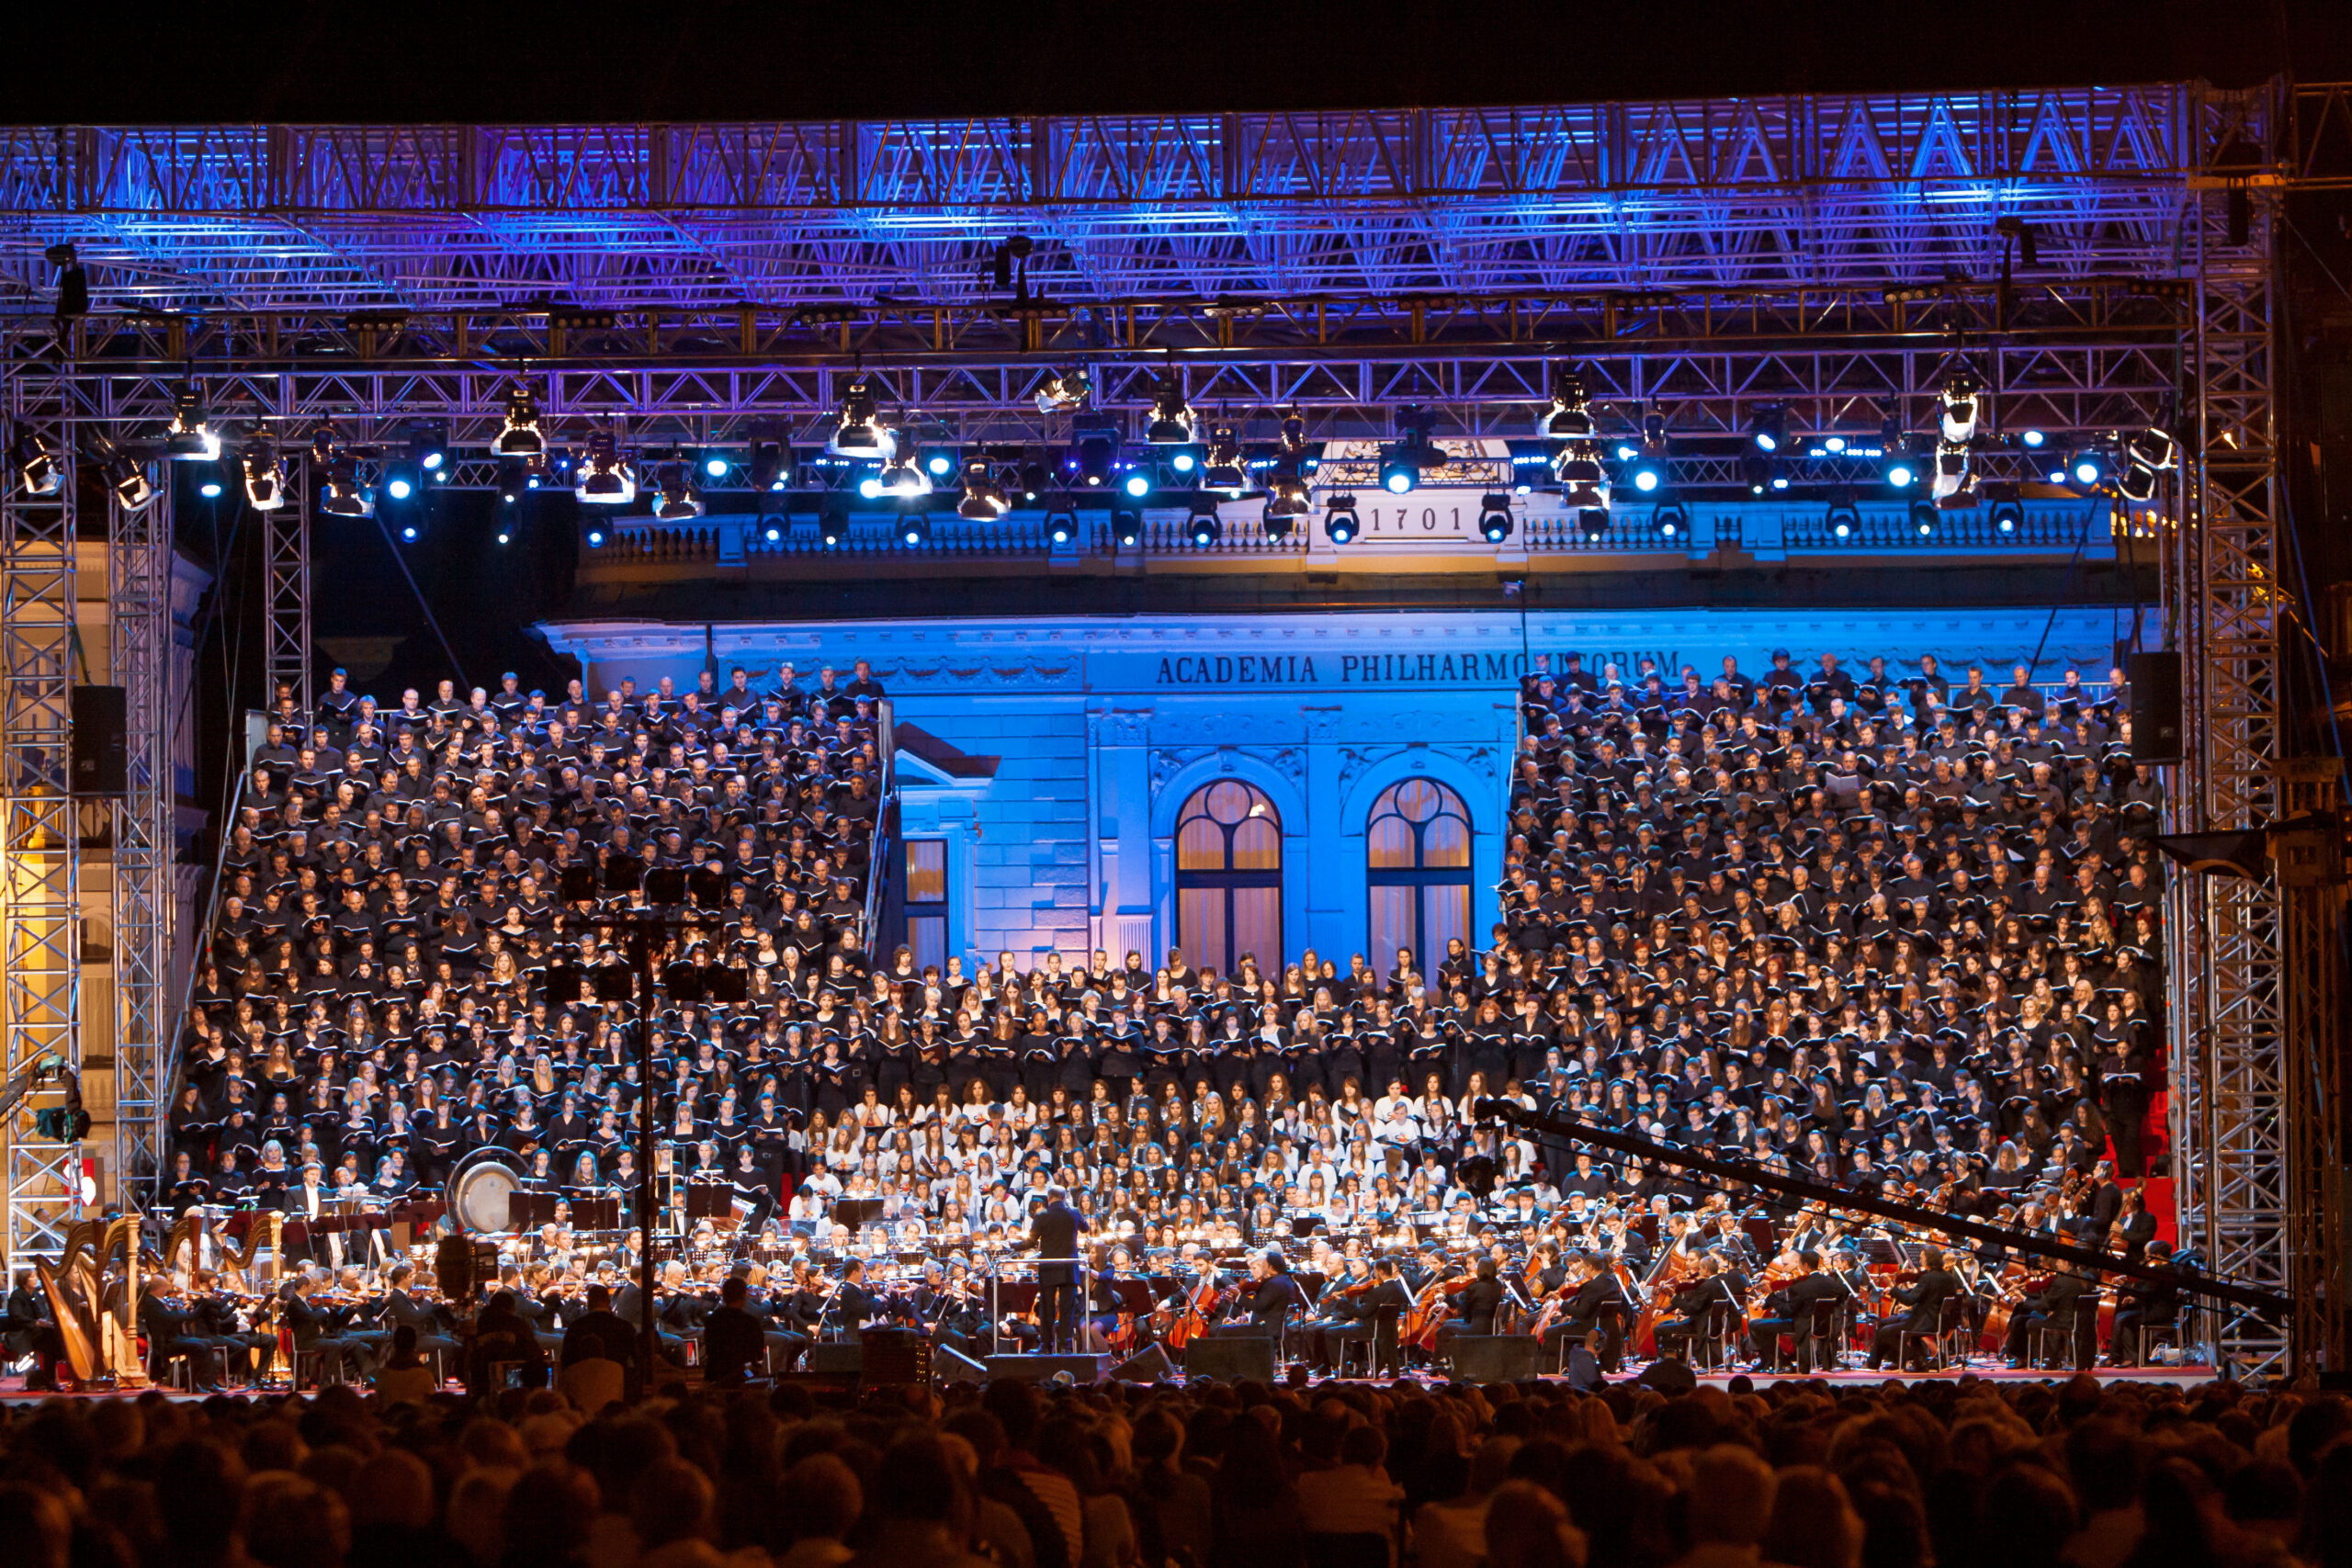 Janez Kotar, Slovenia: Symphony of a Thousand, 2011, Slovenia - On the 20th anniversary of Slovenia's independence, the Slovenian Philharmonic Orchestra and the Zagreb Philharmonic Orchestra performed Mahler's Symphony No. 8 under the baton of Valery Gergiev. The united choir consisted of 950 singers from 21 Slovenian and Croatian choirs.